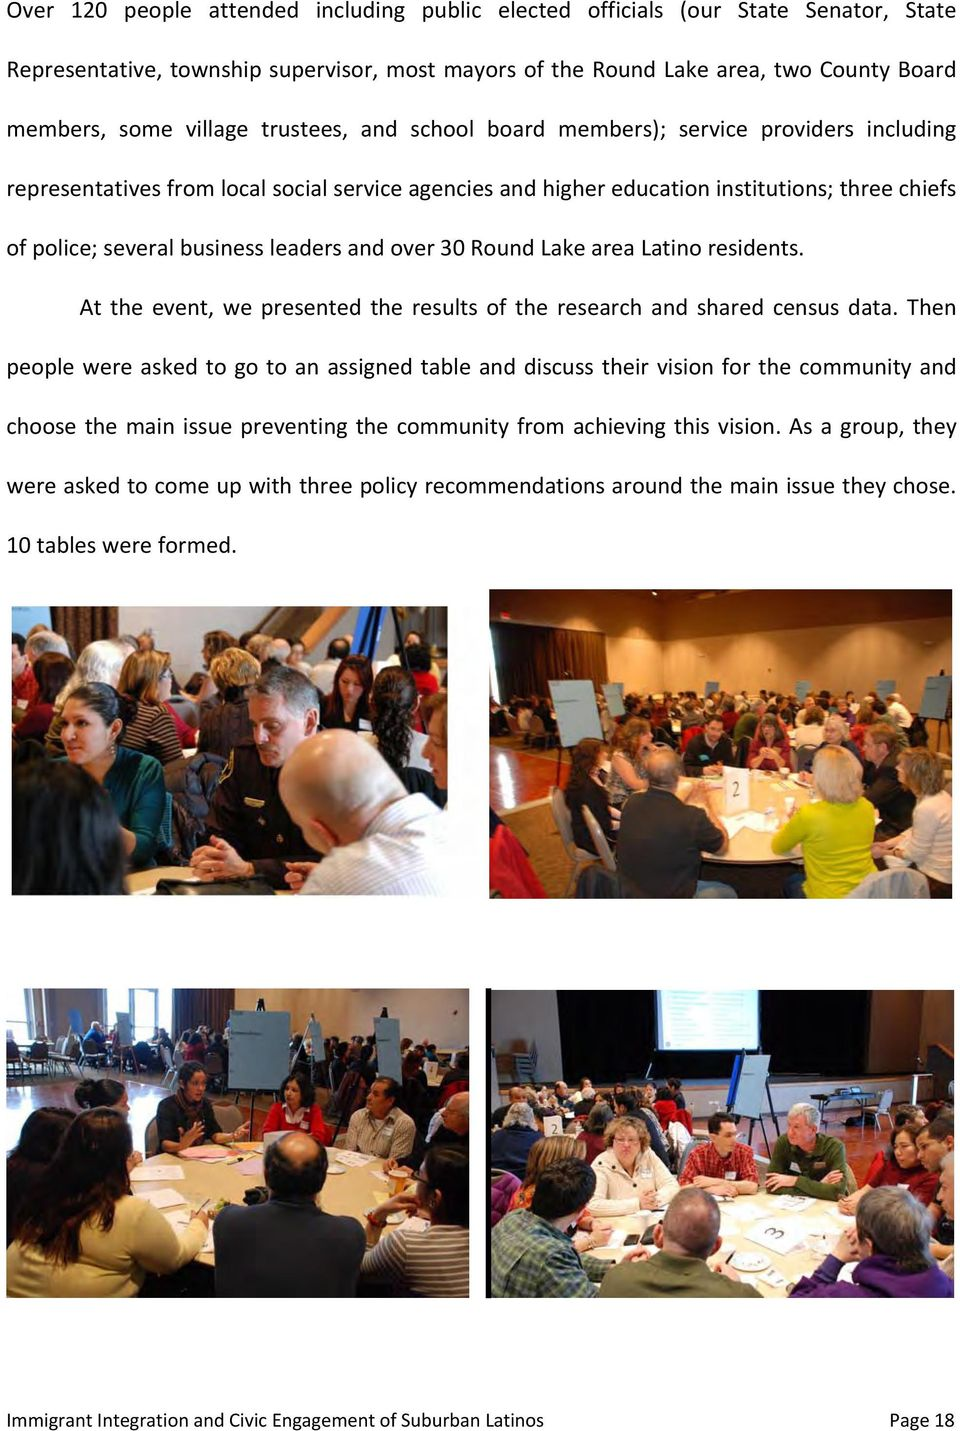 and over 30 Round Lake area Latino residents. At the event, we presented the results of the research and shared census data.